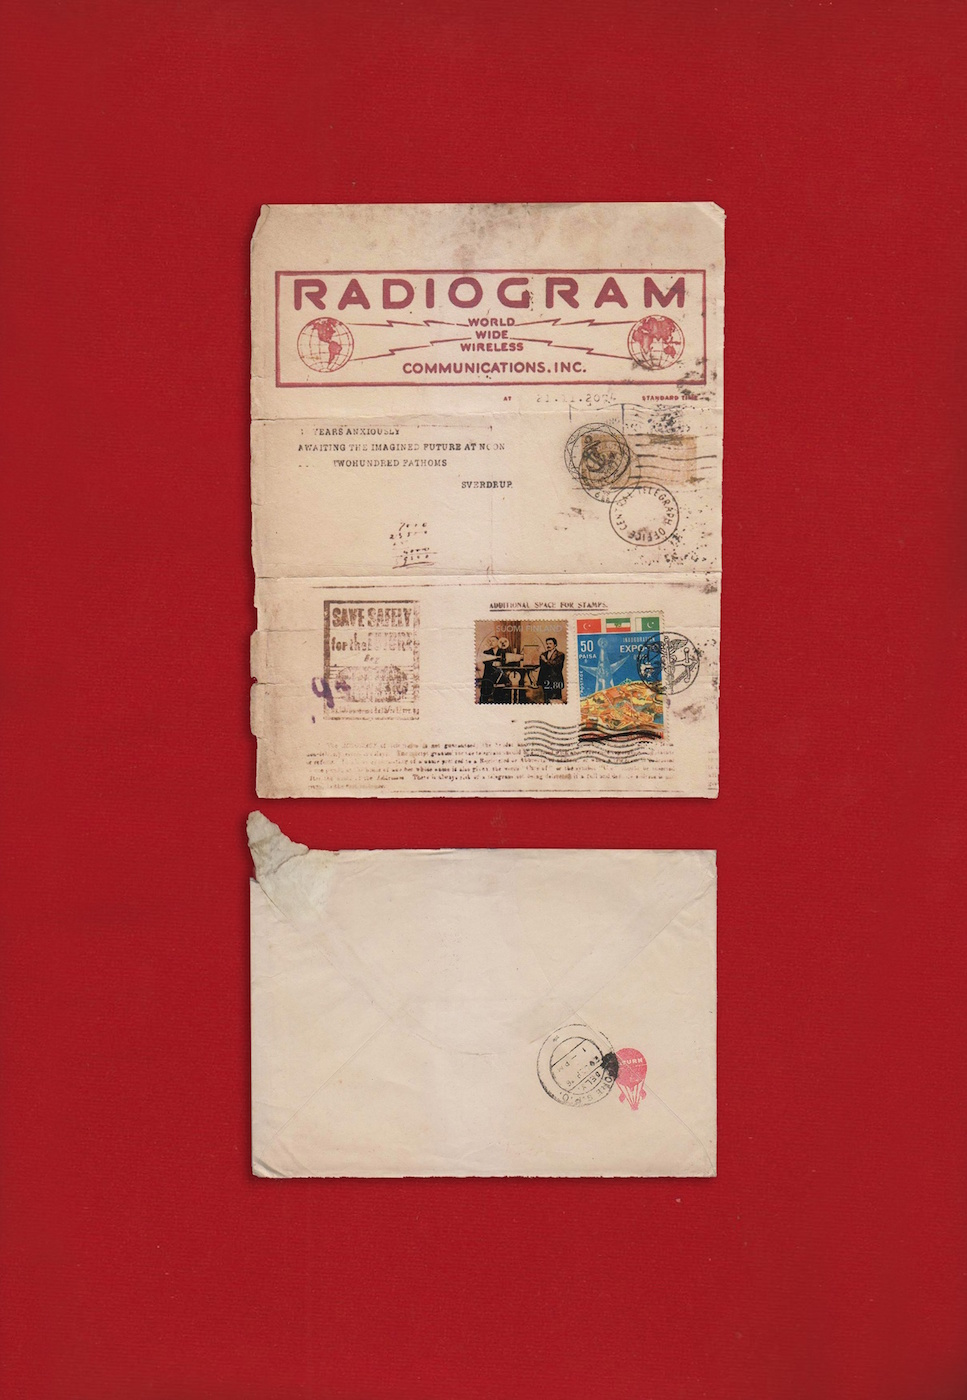 Mehreen Murtaza  Telegram from the Future, Radiogram 2013 Molded paper rubber stamps postage stamp, ink, accompanying envelioe, red velvet 36.83 x 55.25 x 3.91 cm (framed), 17.78 x 22.86 cm (molded paper) and 12.95 x 18.28 cm (envelope)